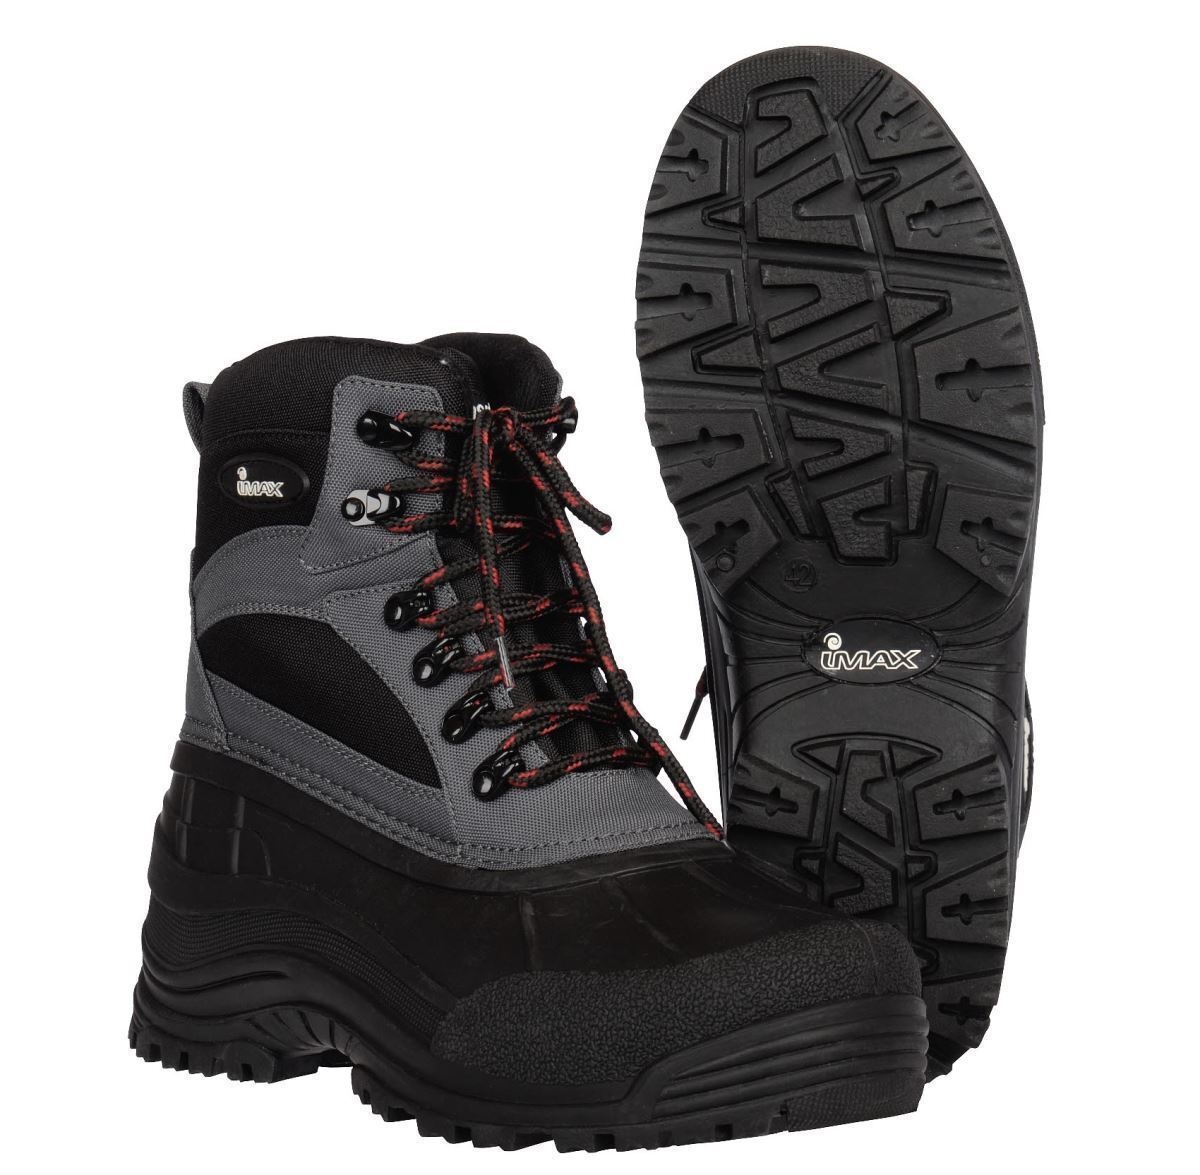 IMAX NEW Sea Boots Lightweight All-Round Boot   - All Sizes  outlet store